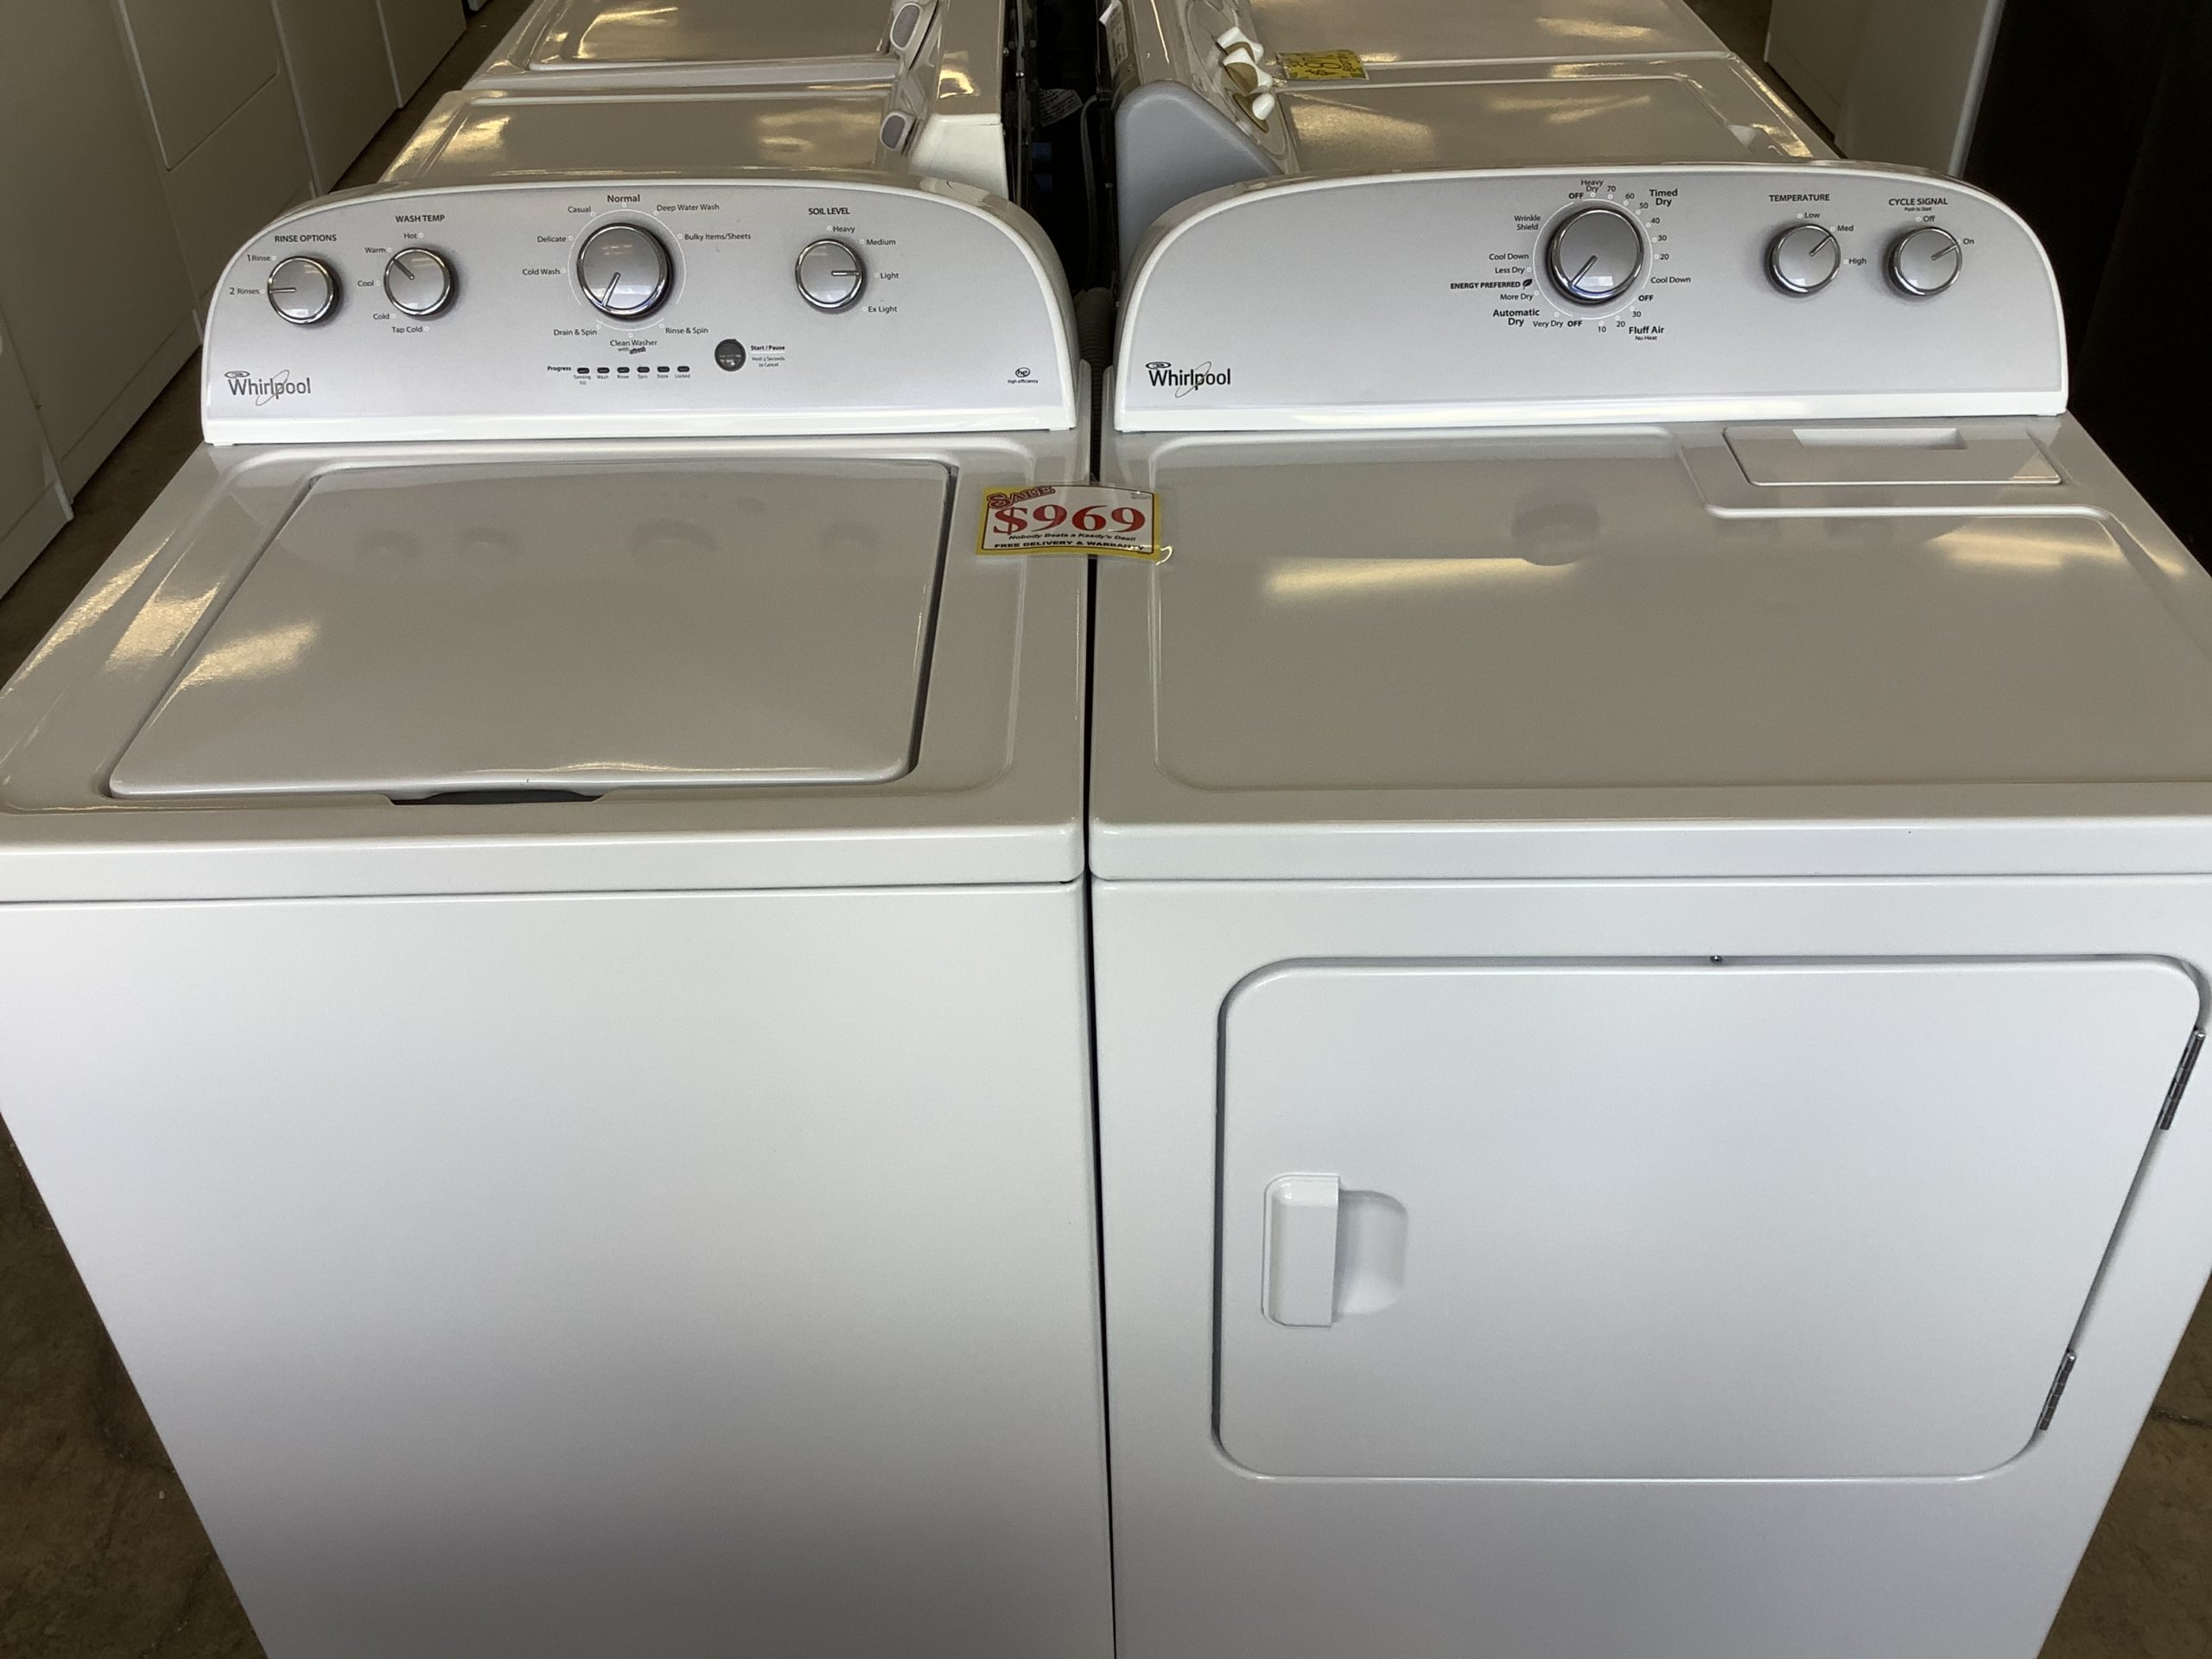 Whirlpool high efficiency washer and dryer Rinse option ...